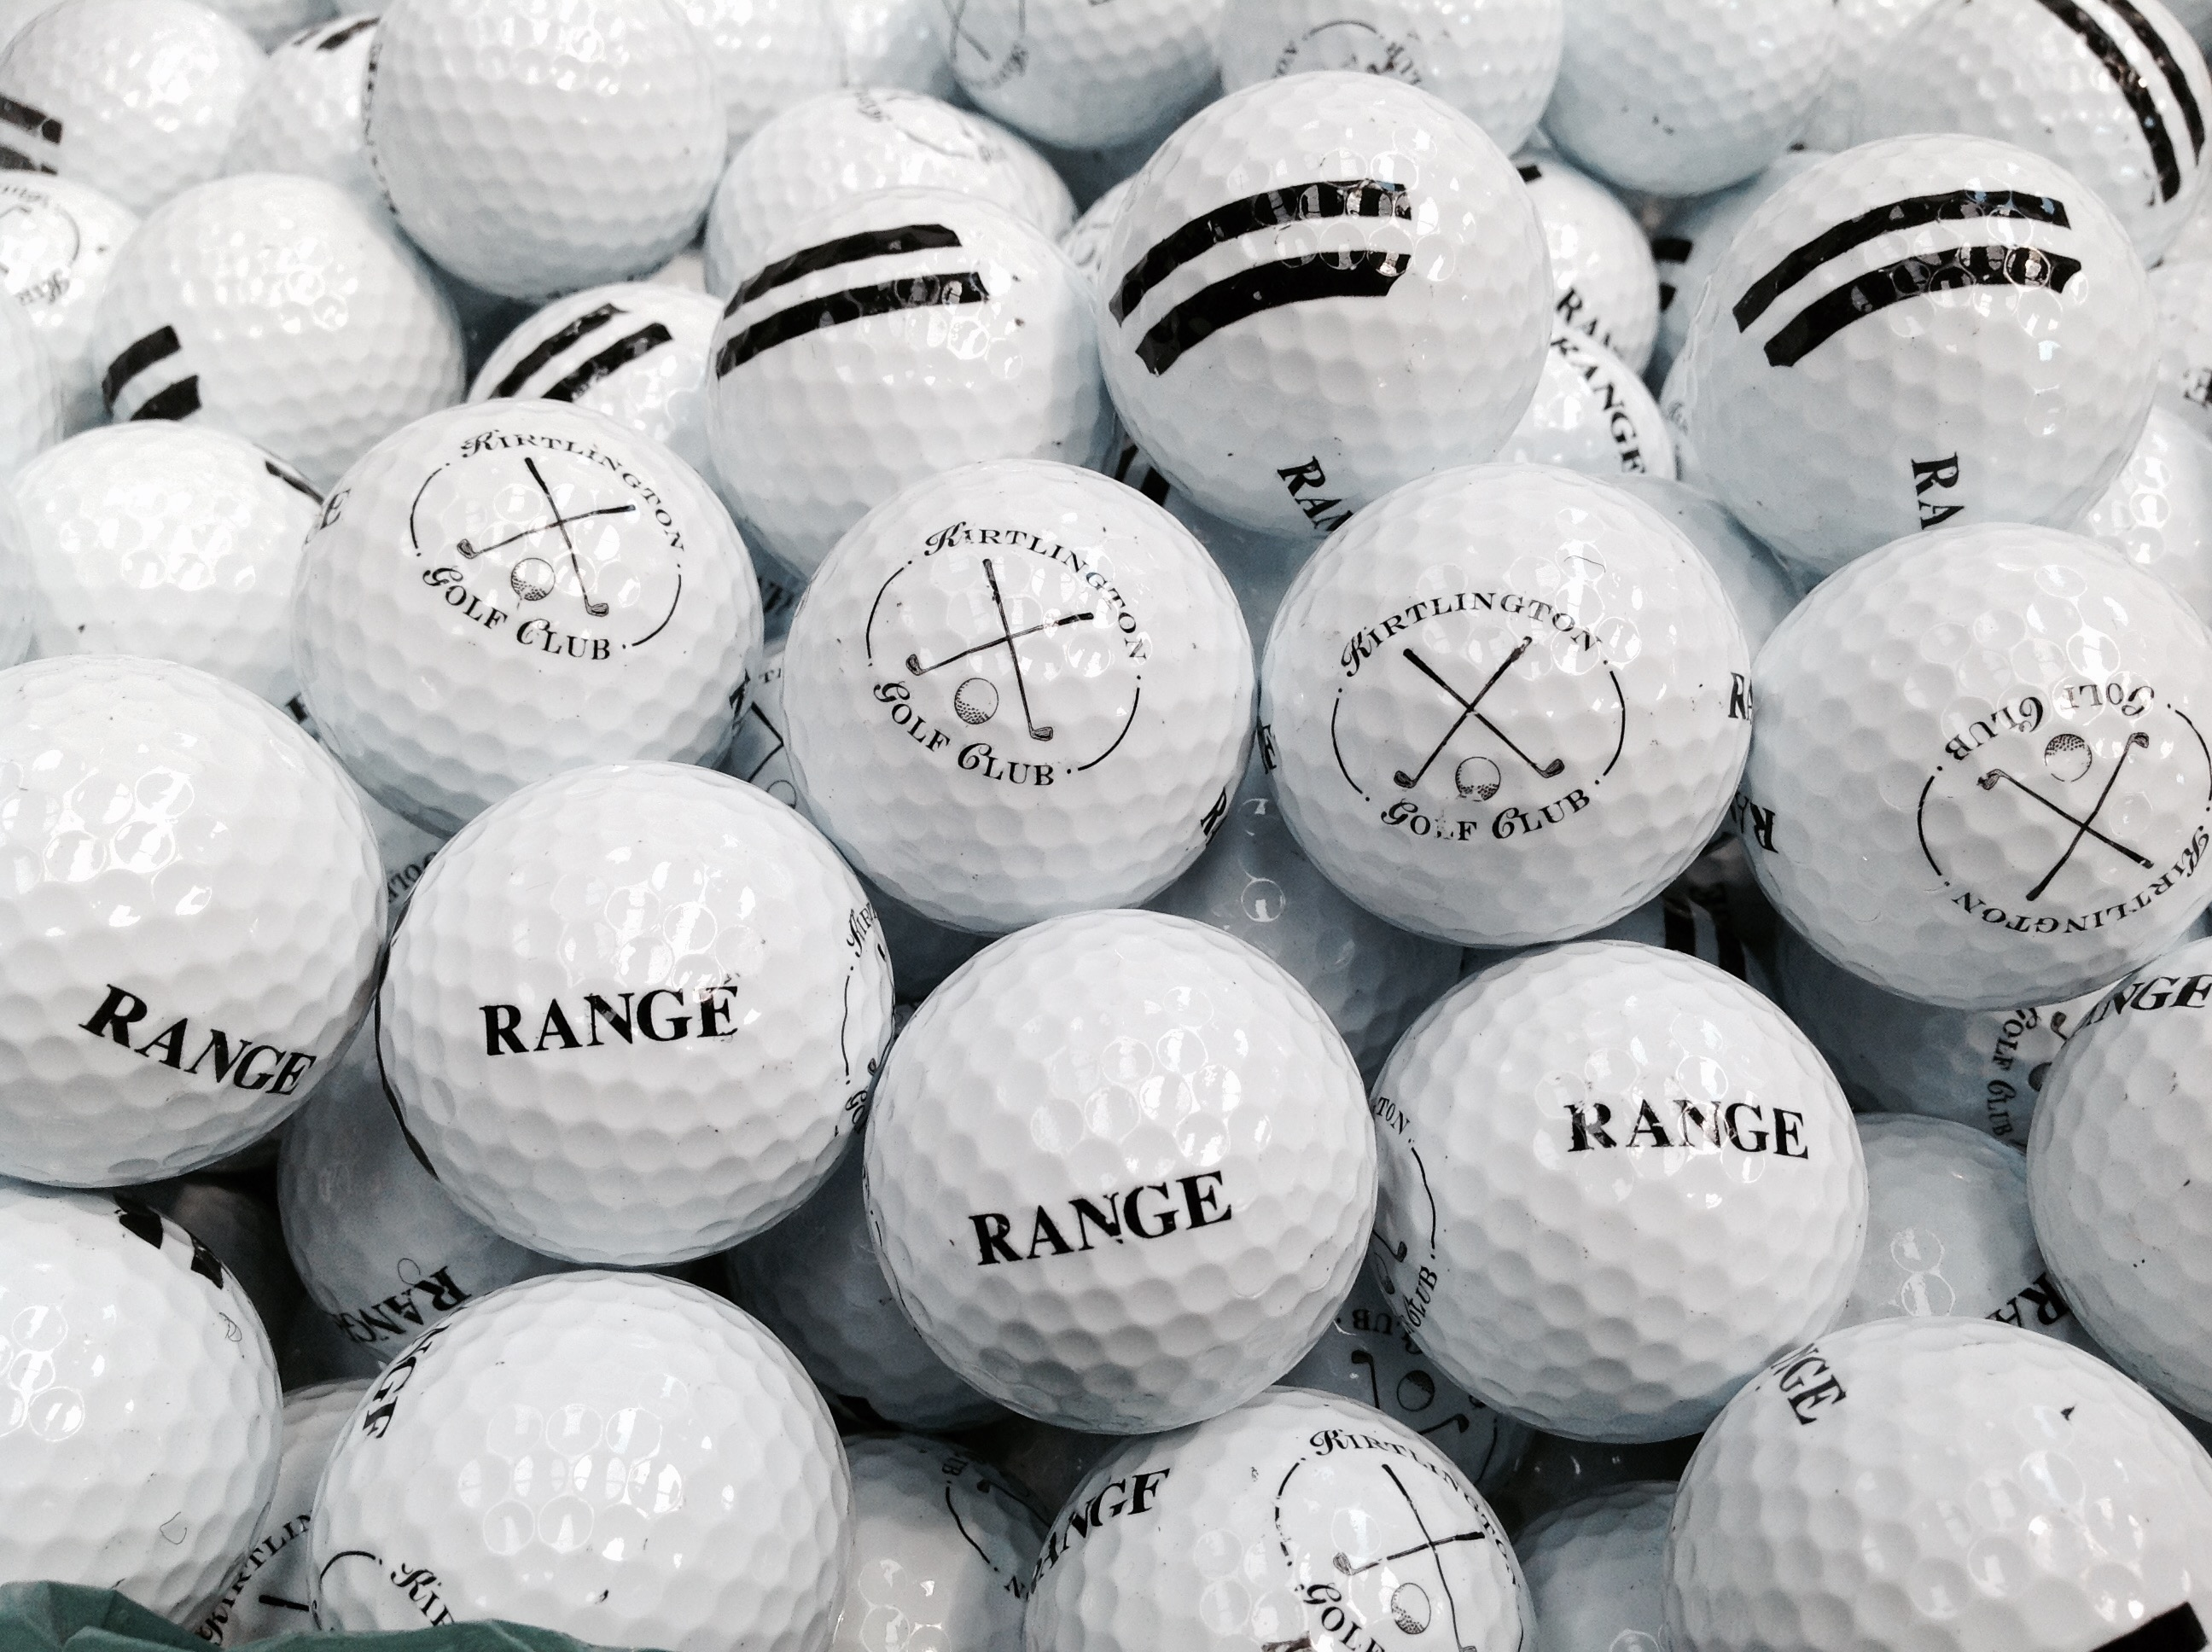 100 x white range golf balls brand new 2 piece driving plain kirtlington club ebay. Black Bedroom Furniture Sets. Home Design Ideas